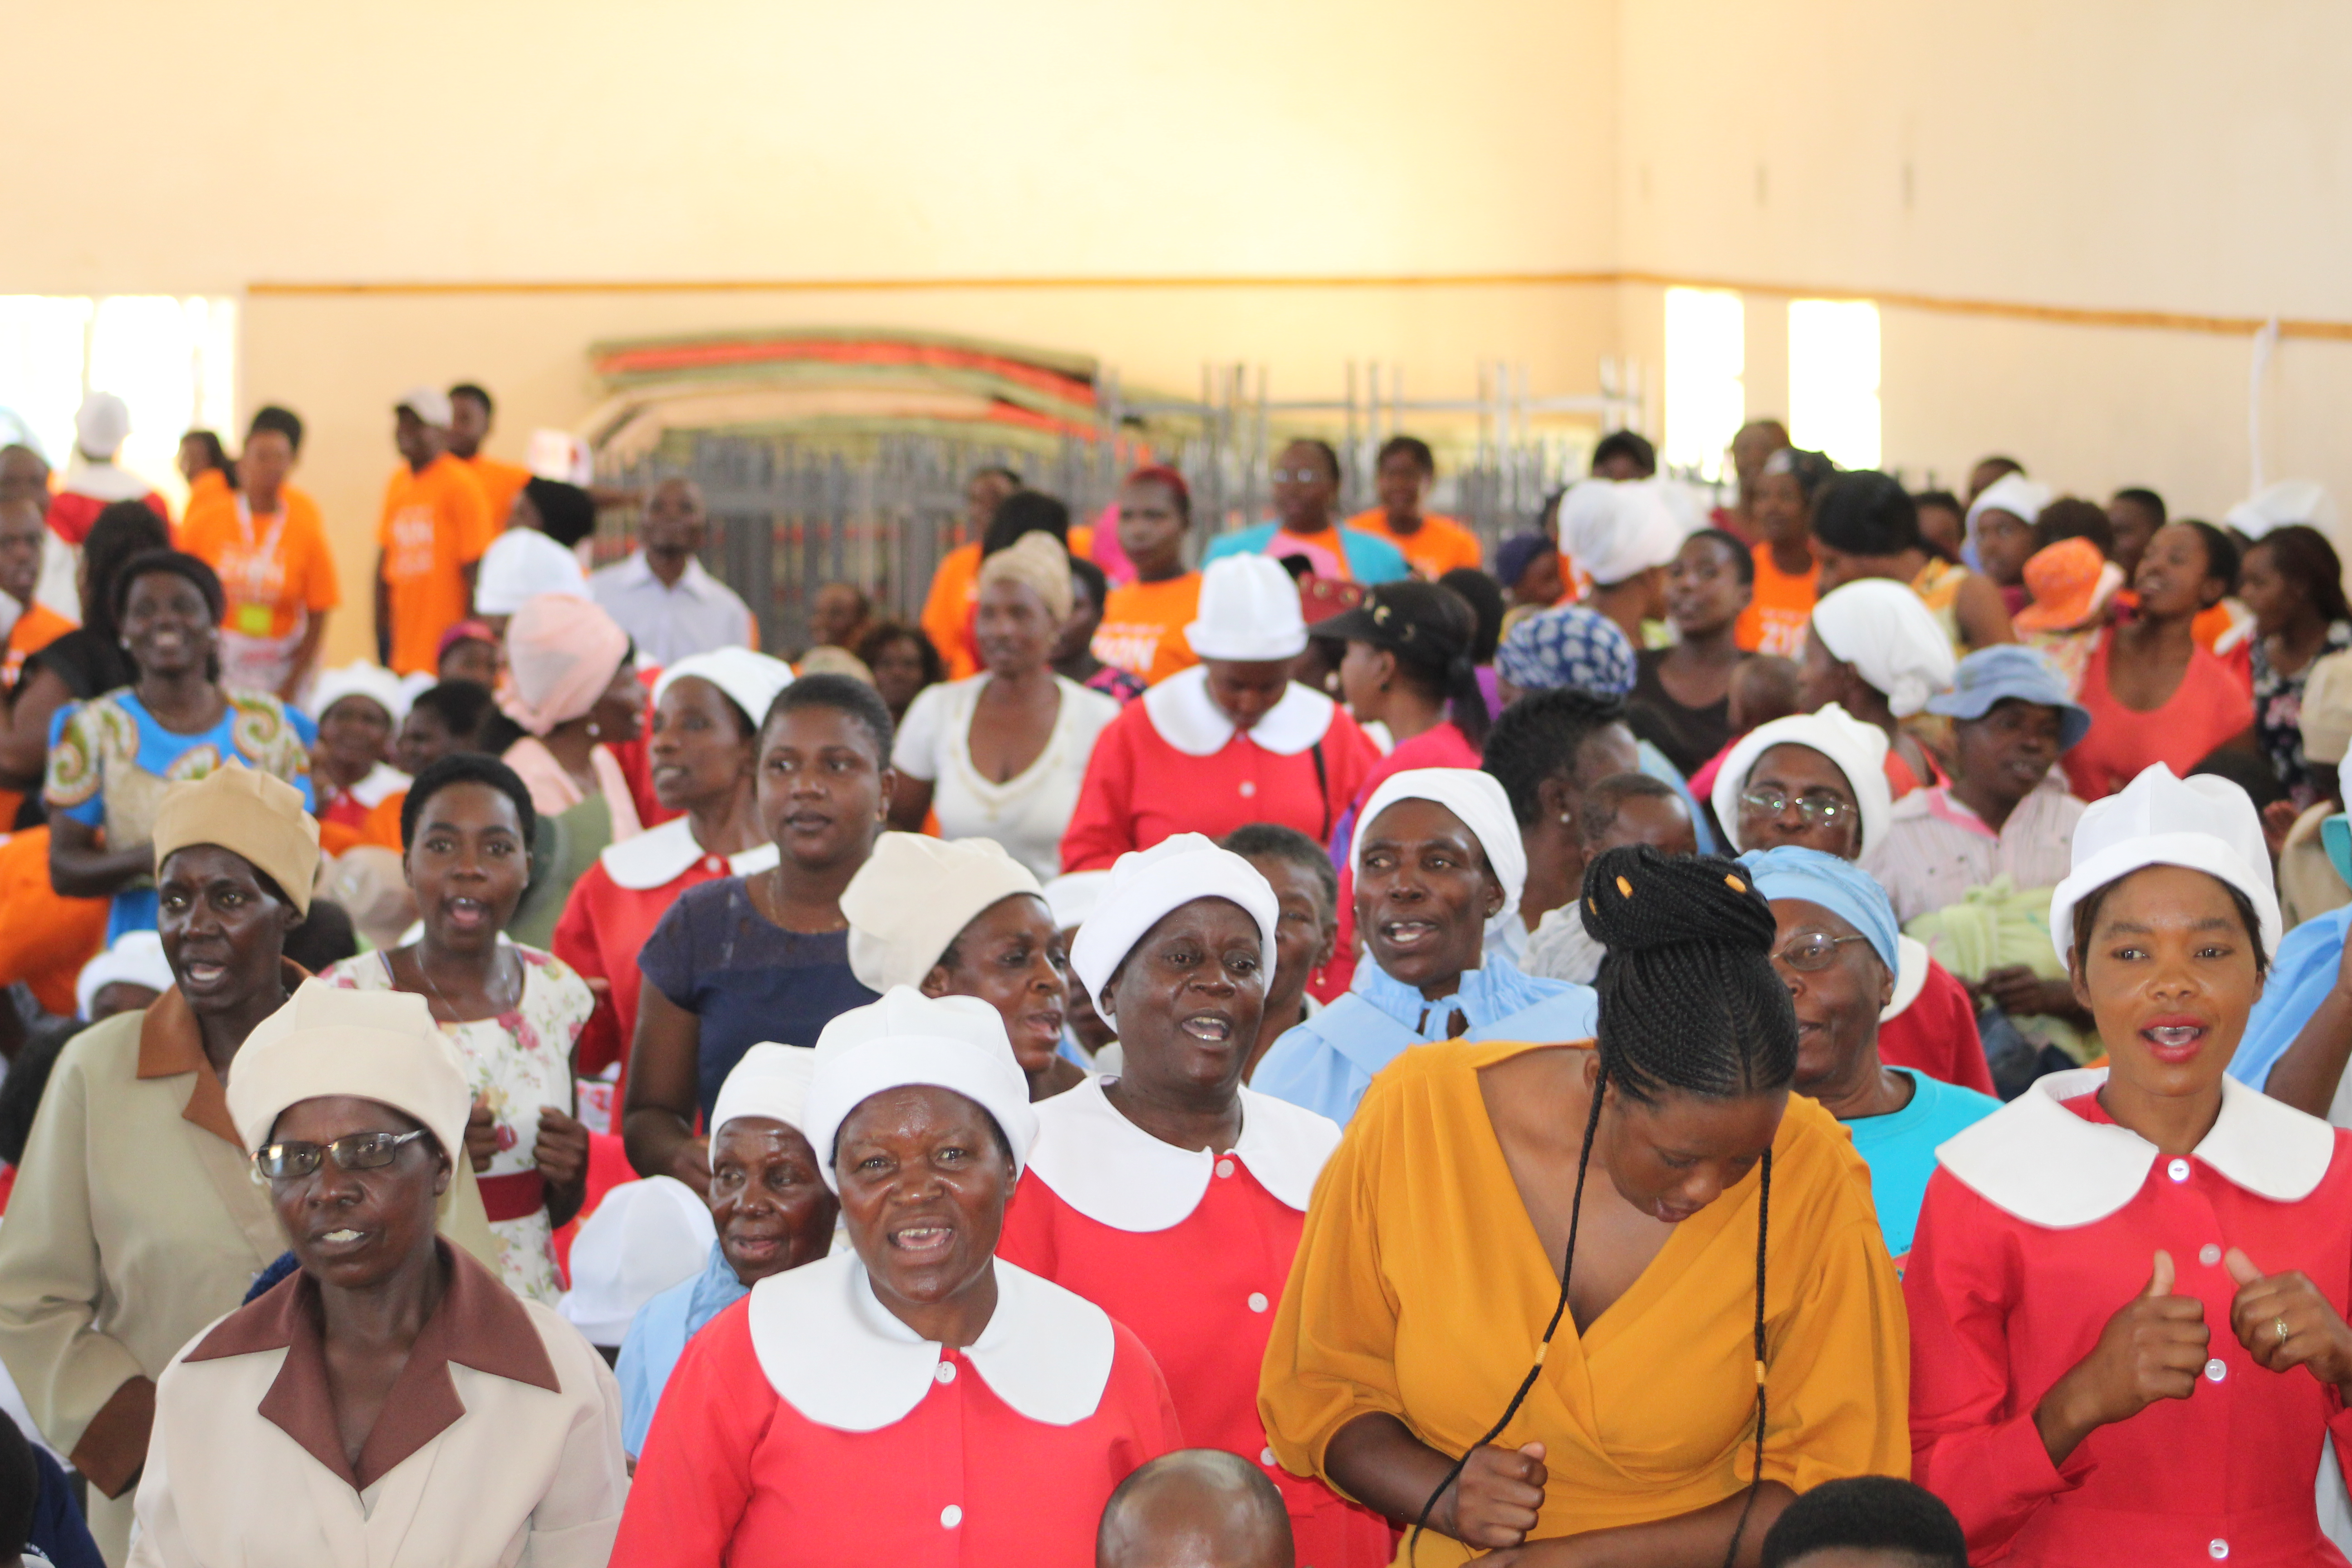 Members from various churches gather at the women and girls symposium